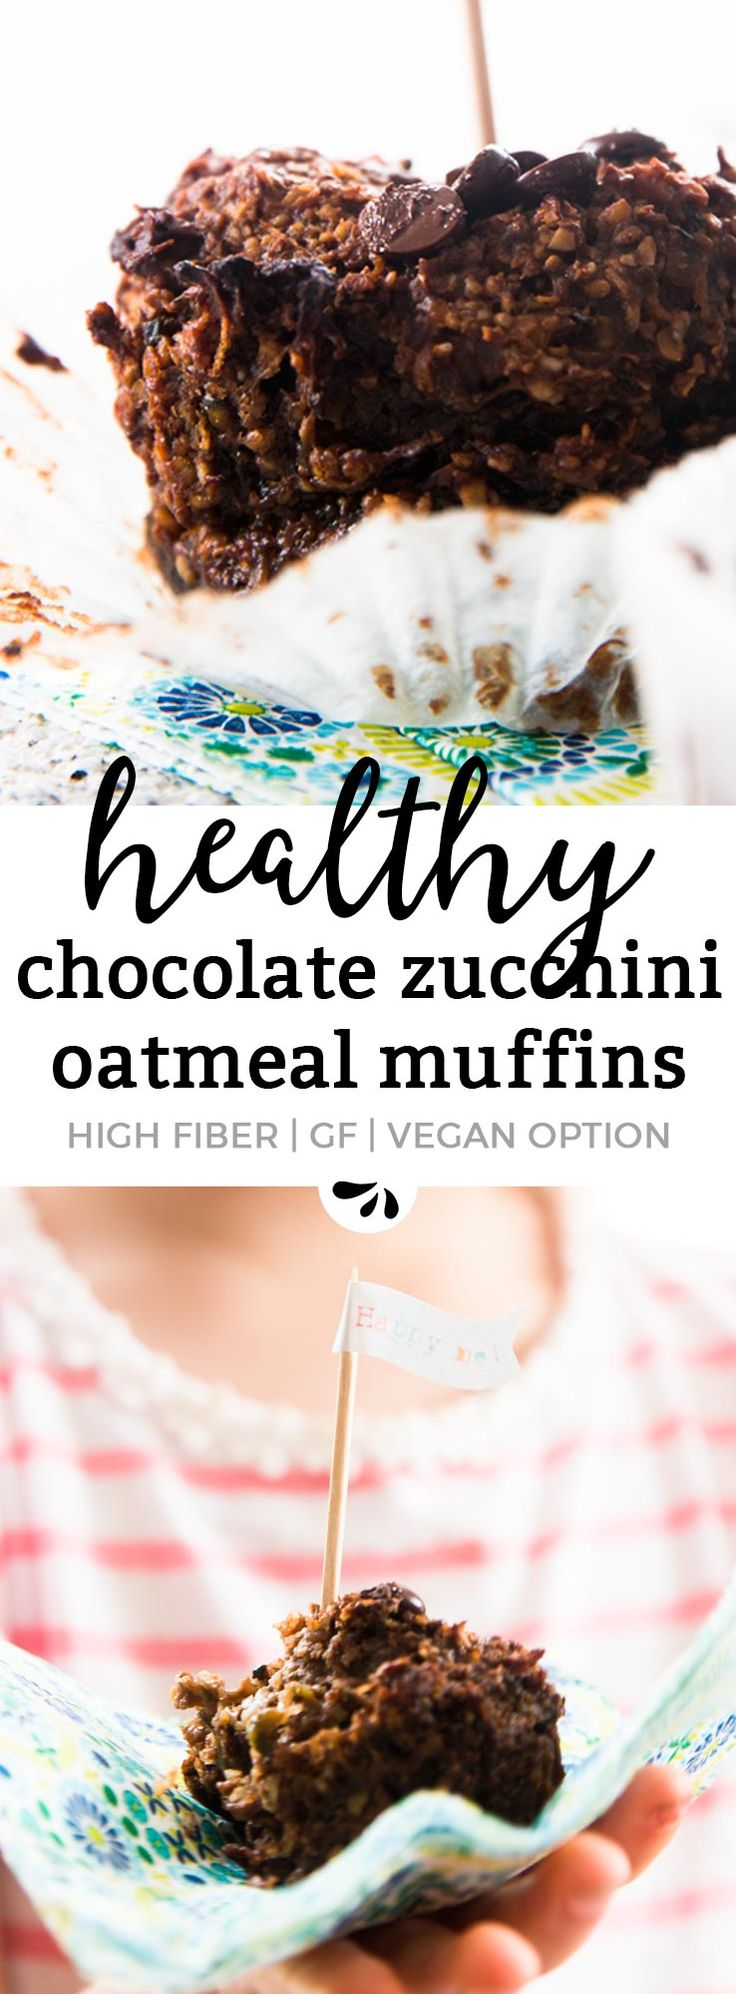 These Coconut Chocolate Zucchini Oatmeal Muffins are gluten free, dairy free, egg free and easily vegan if you substitute the honey with maple syrup or agave nectar. They're great if you're looking for healthy homemade snack recipes for kids and toddlers, or for healthy on the go breakfast ideas. Quick and easy to make, sweet, and fit 100% into your family's clean eating goals! They're great for school, too, since they're nut free and super allergy friendly. via @savorynothings